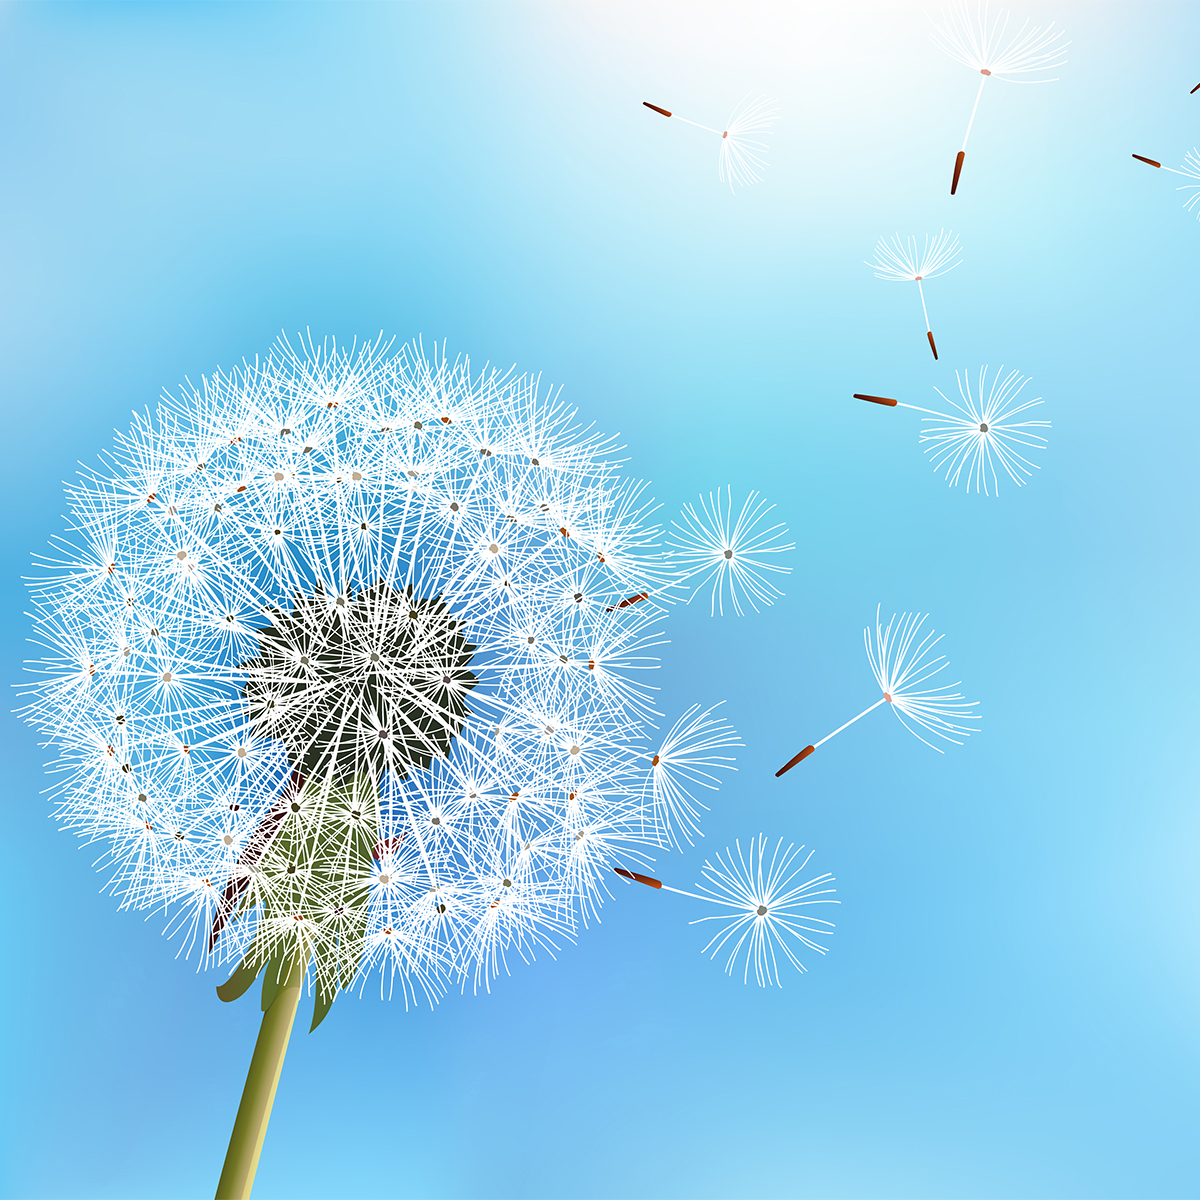 dandelion on bright blue background with seeds blowing away